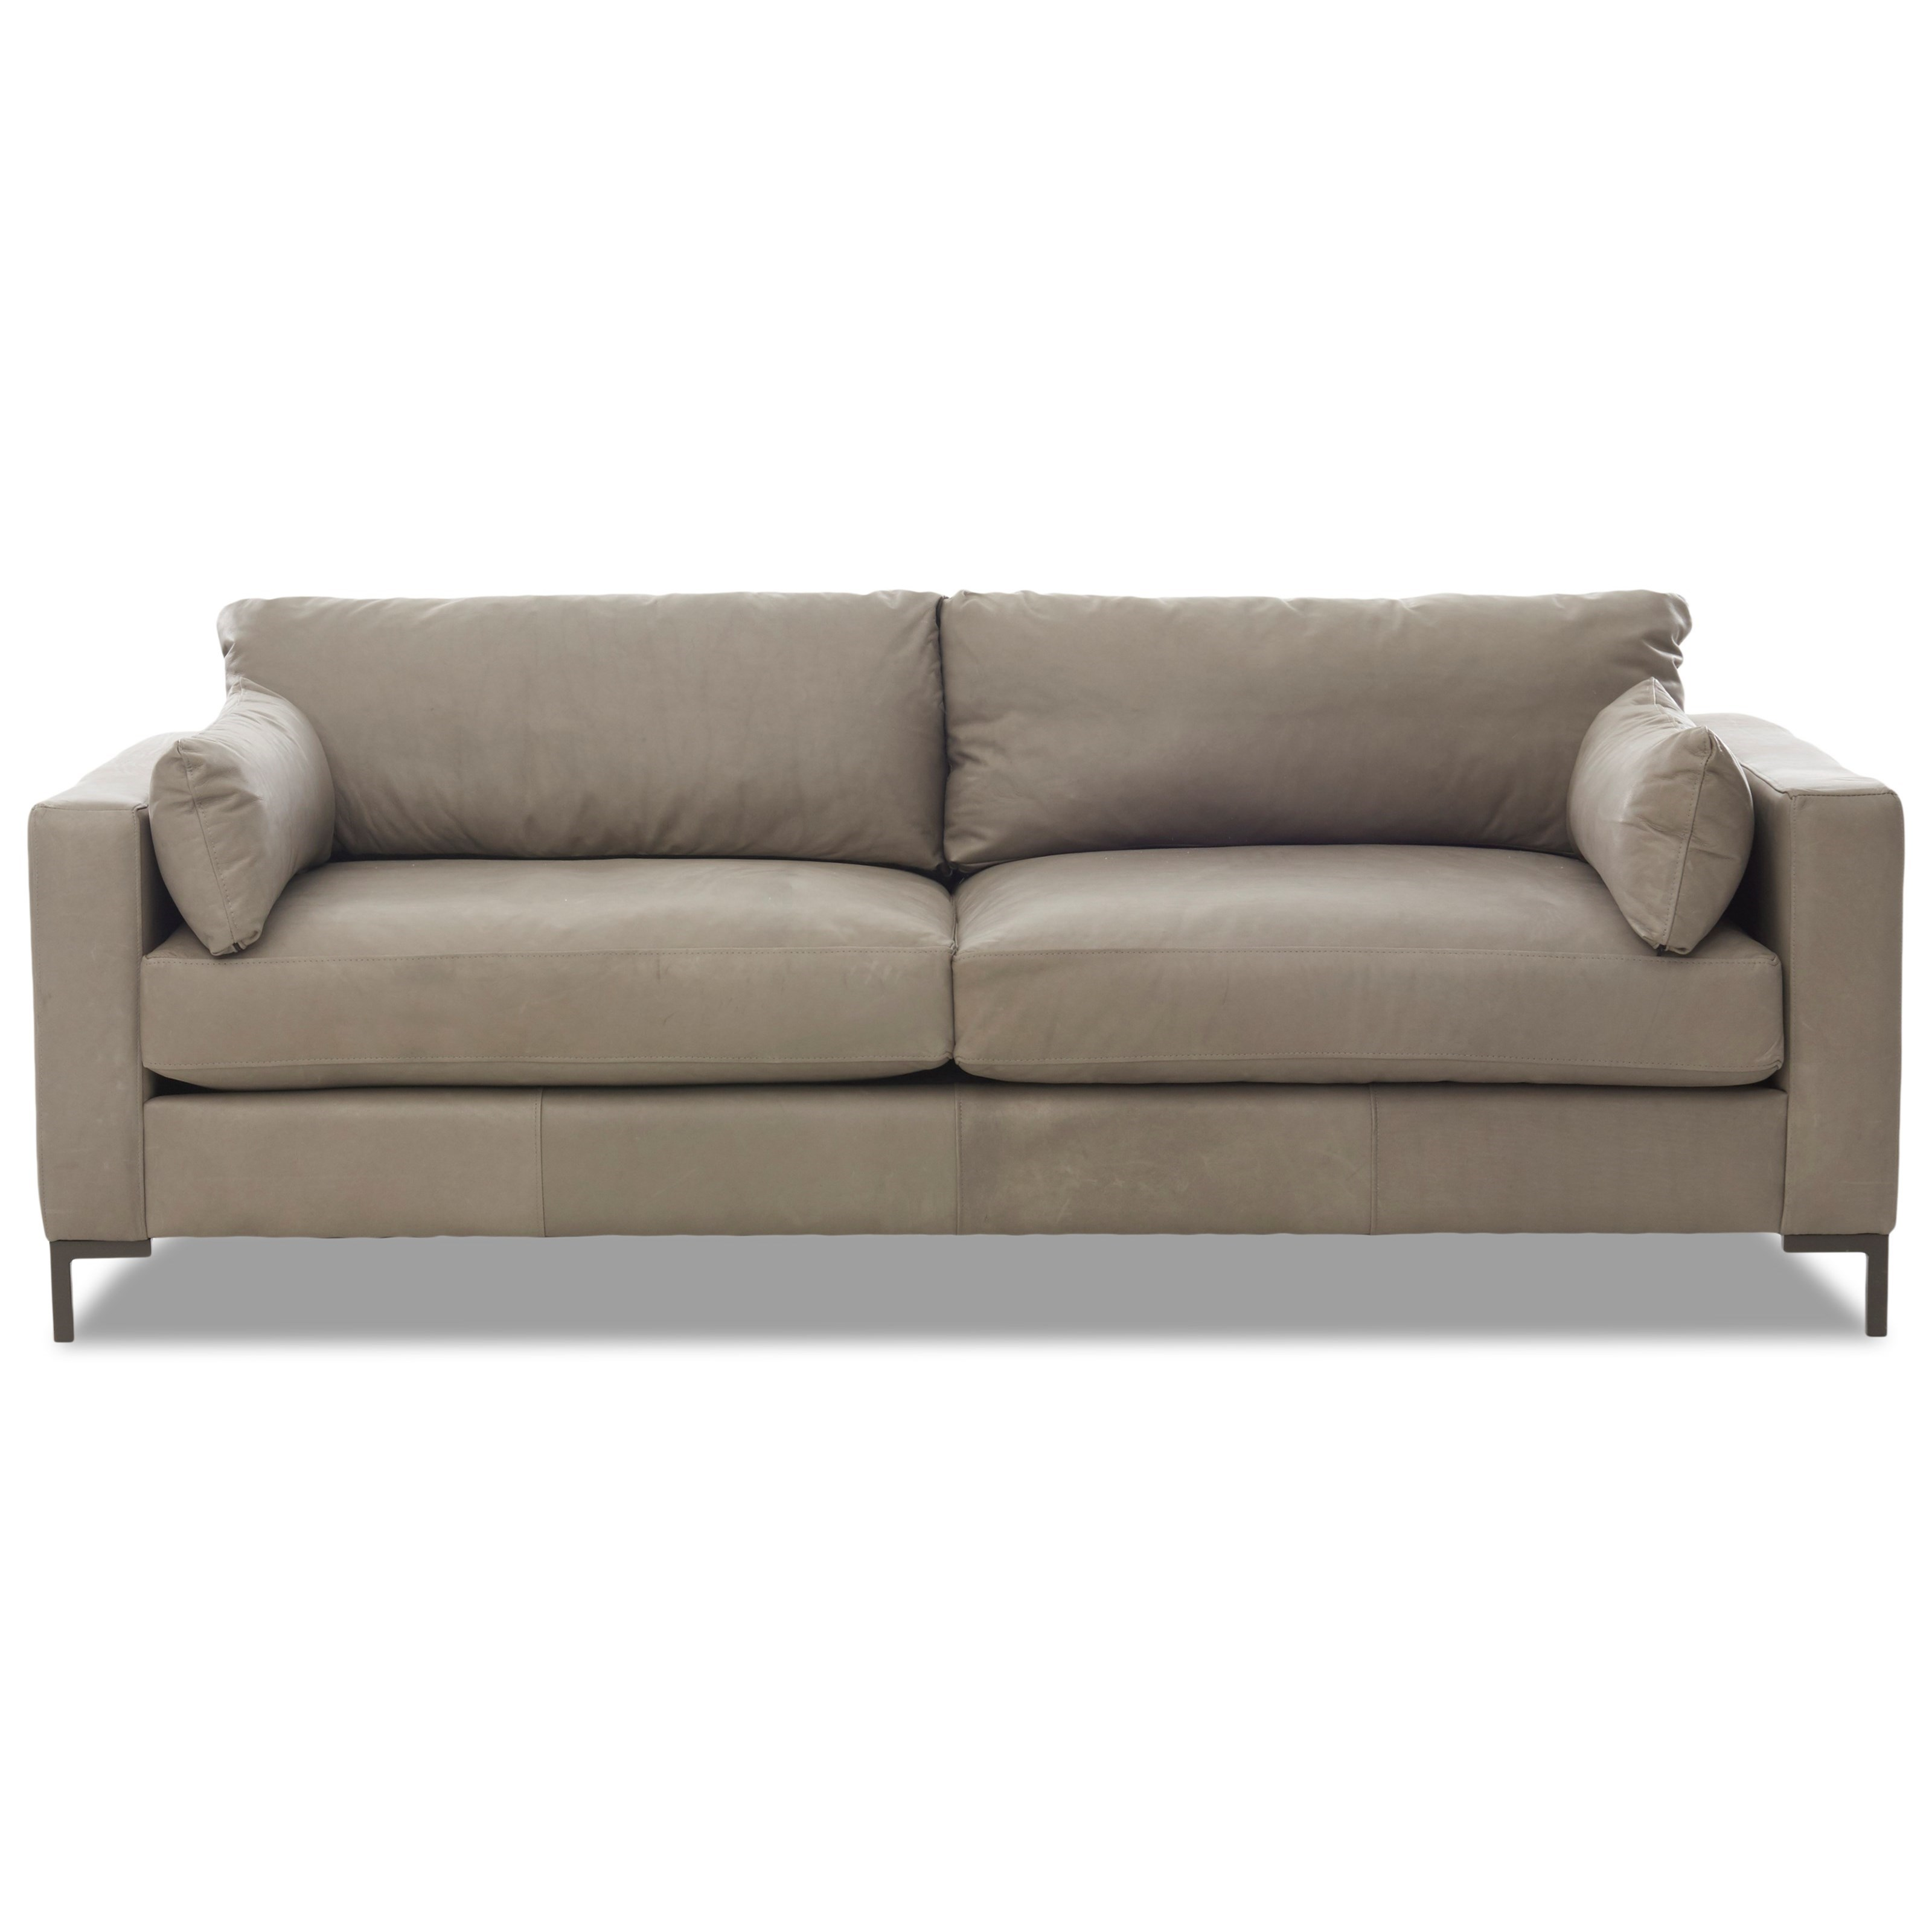 Contemporary Sofa with Track Arms and Metal Legs